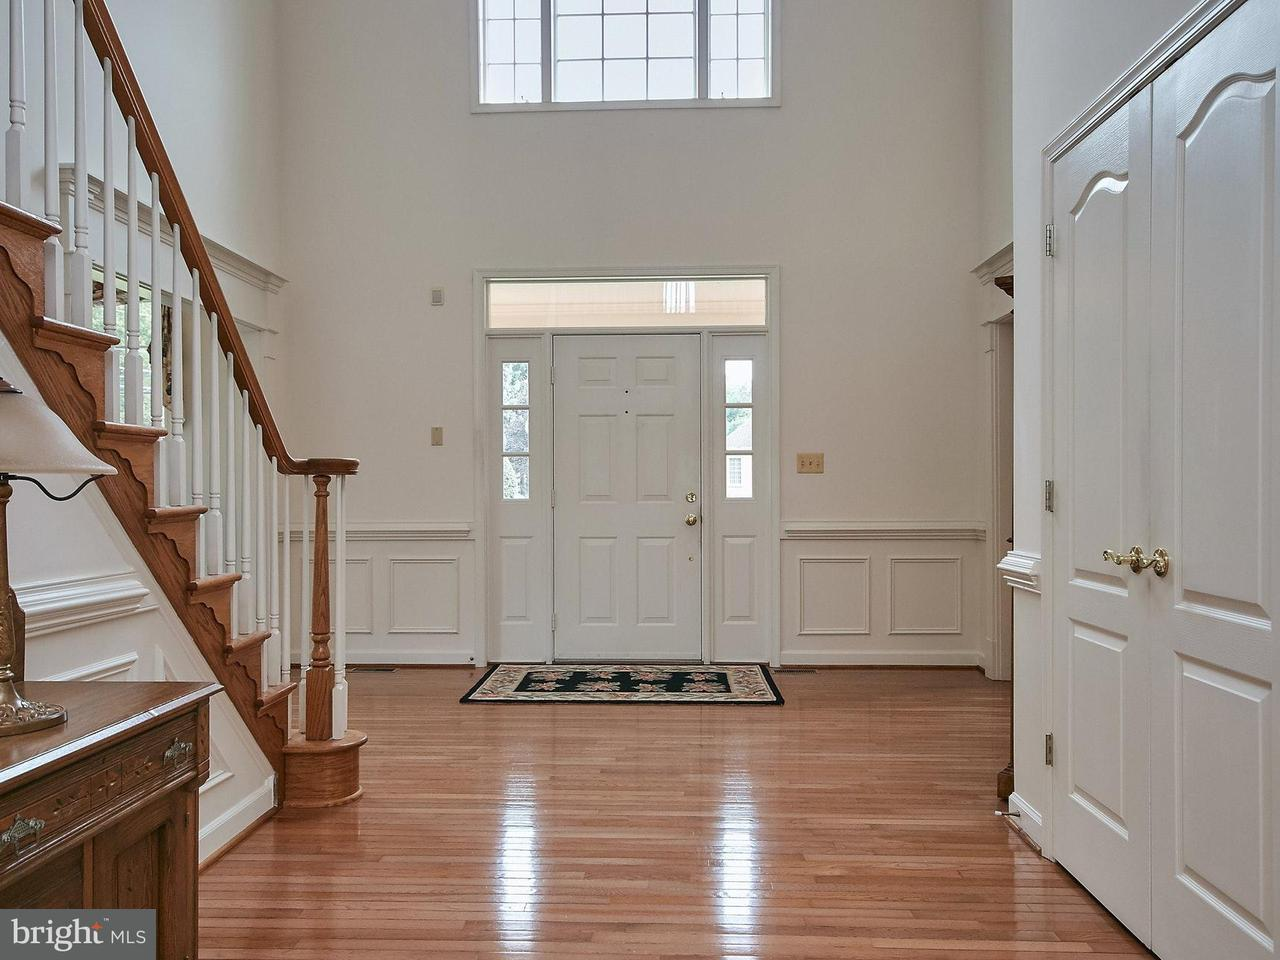 Single Family Home for Sale at 10300 MYSTIC MEADOW WAY 10300 MYSTIC MEADOW WAY Oakton, Virginia 22124 United States